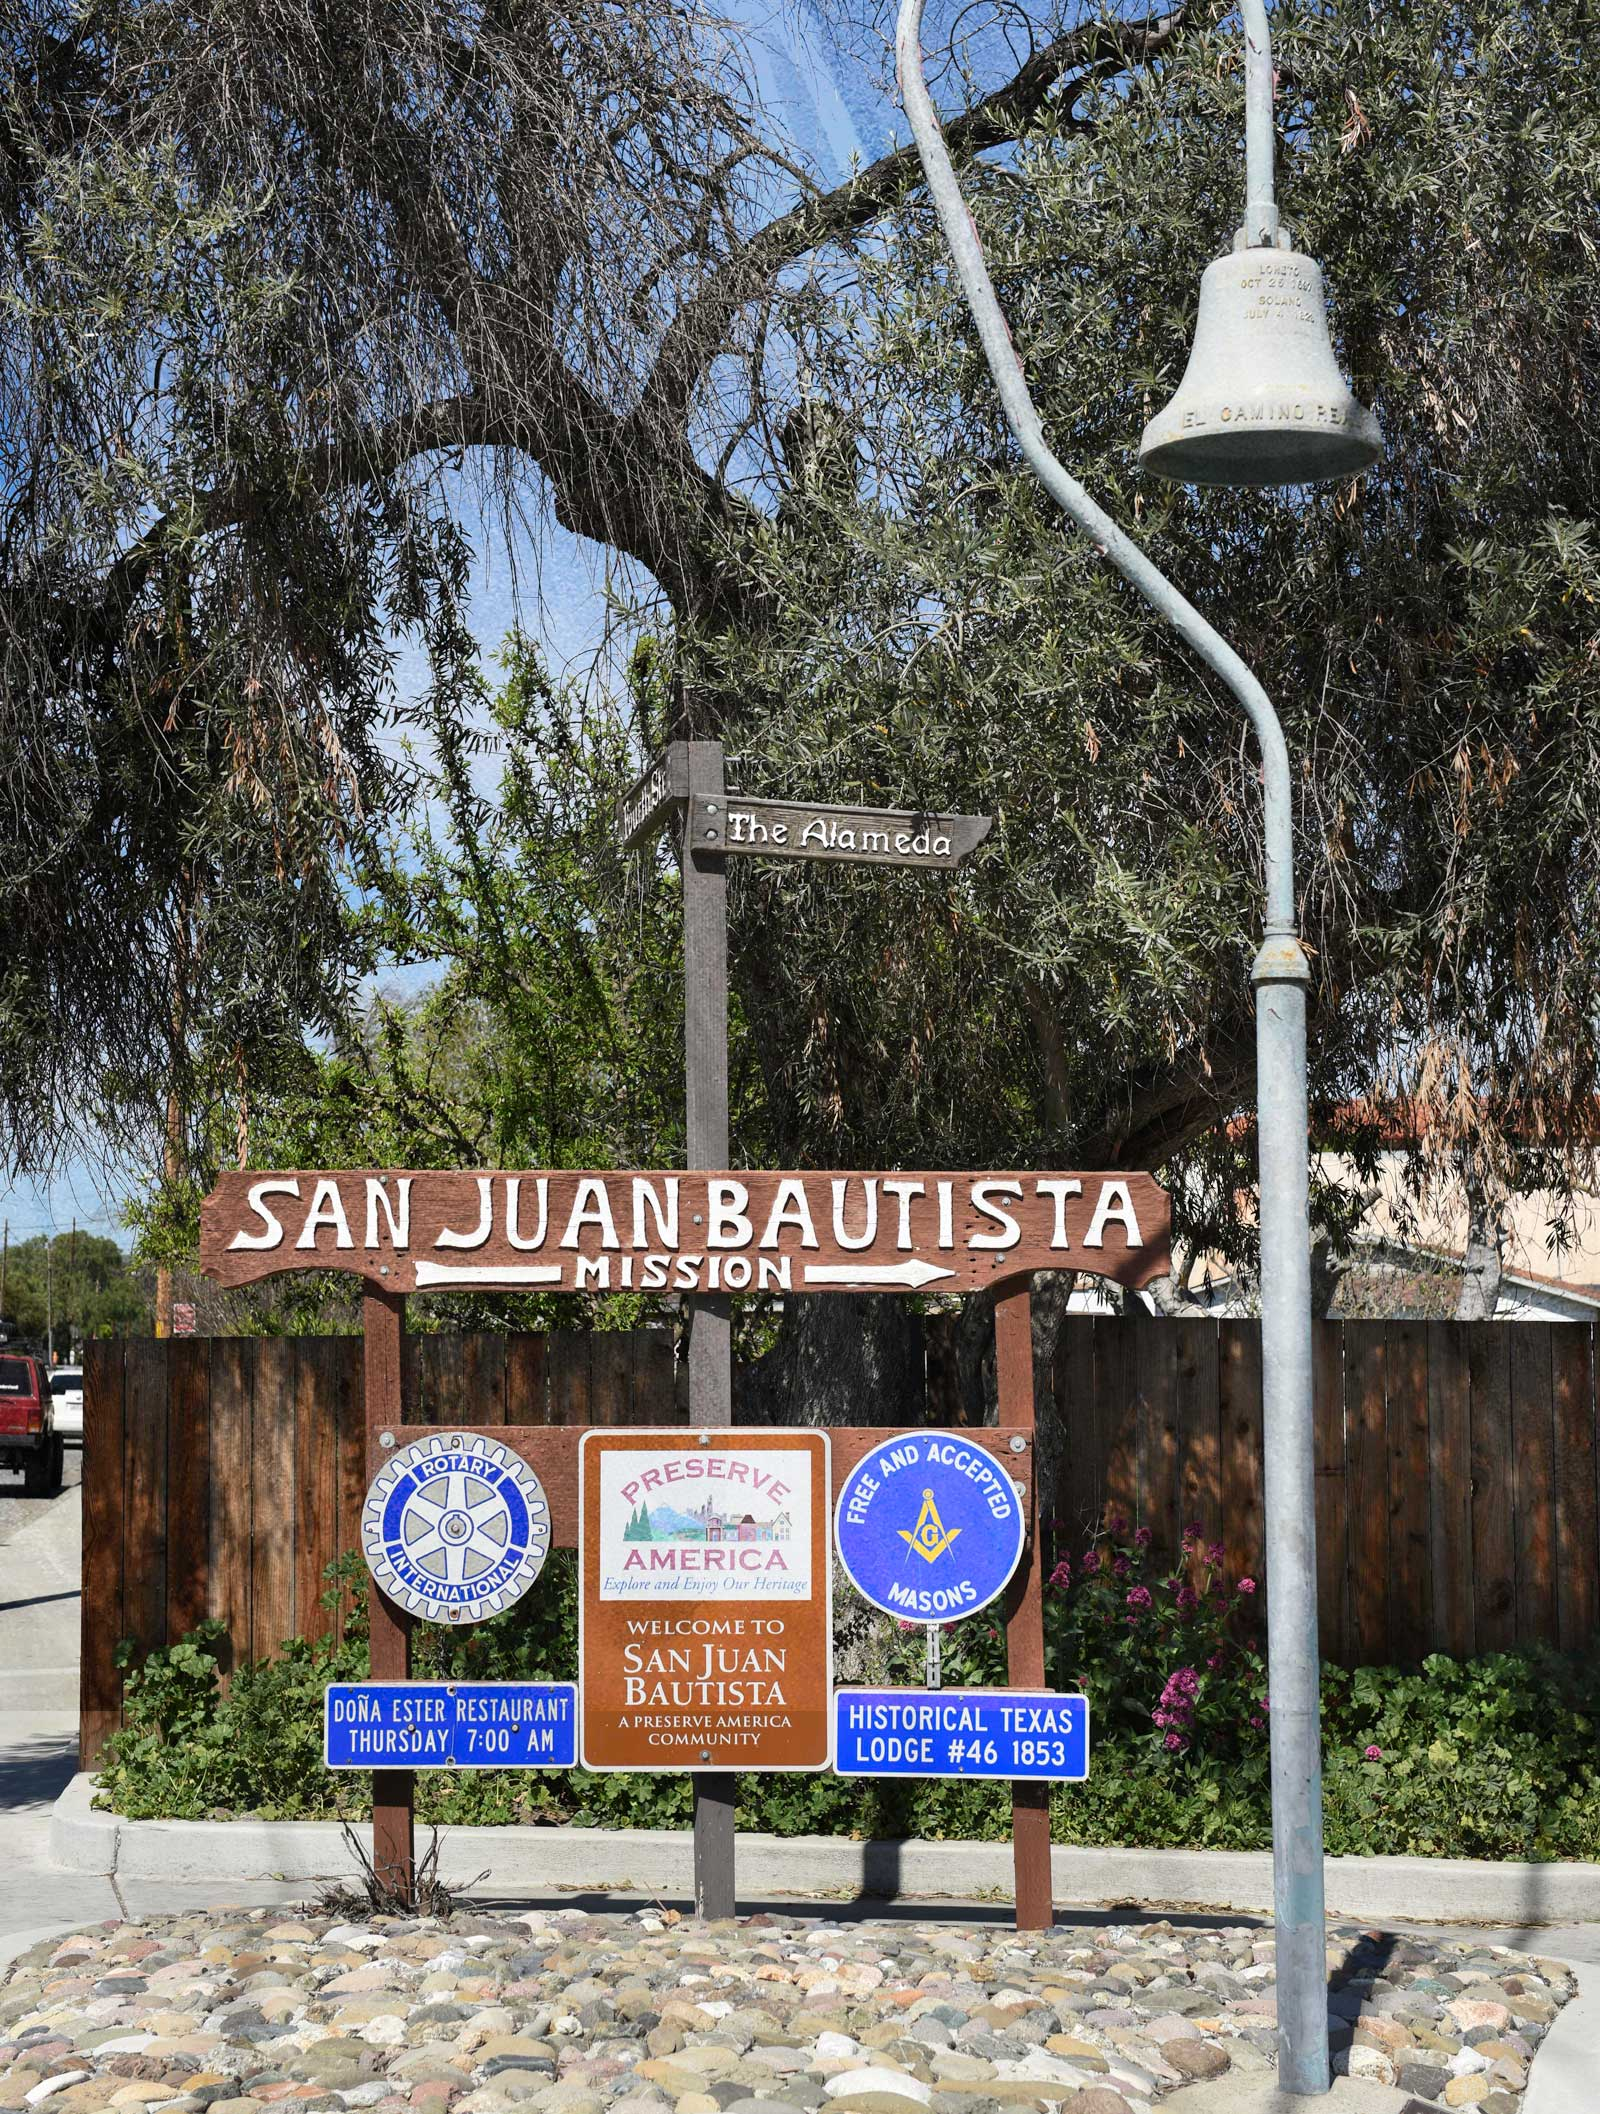 San Juan Bautista Welcome sign